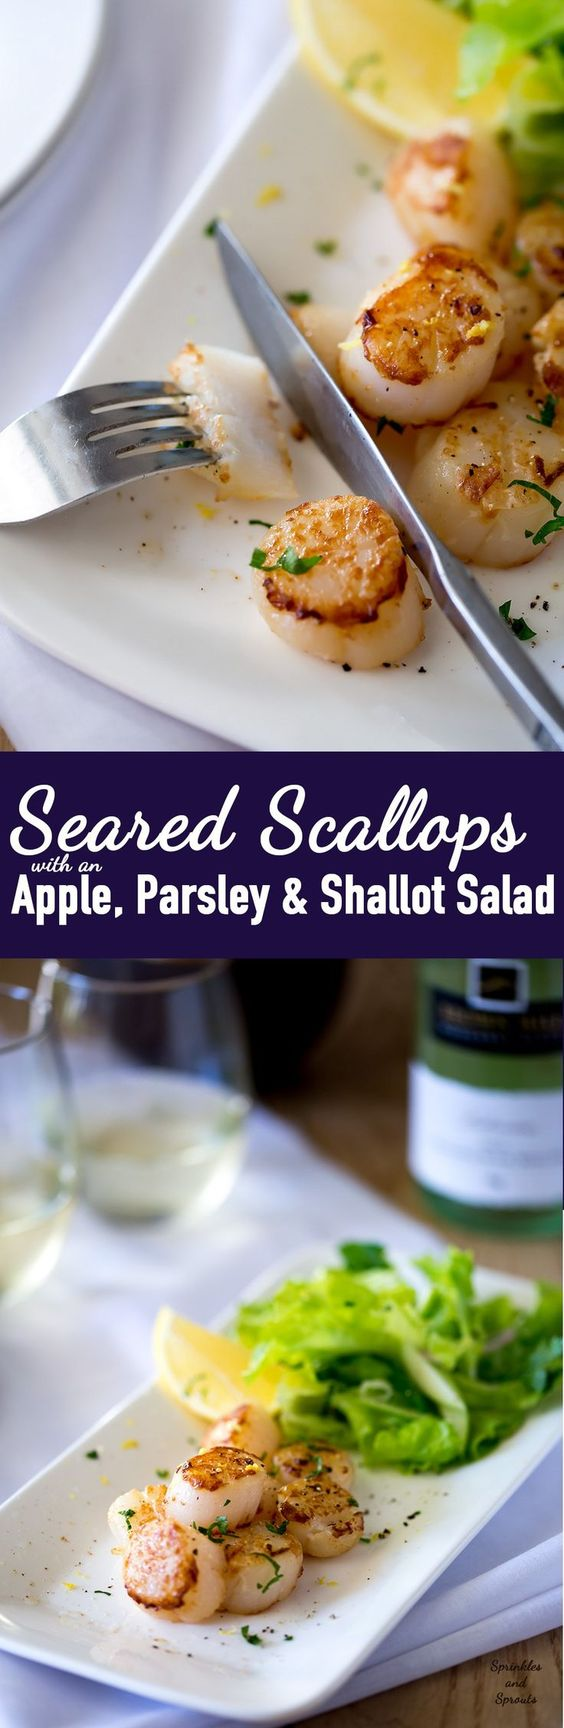 with lemon served with a fresh and crunchy apple and parsley salad ...